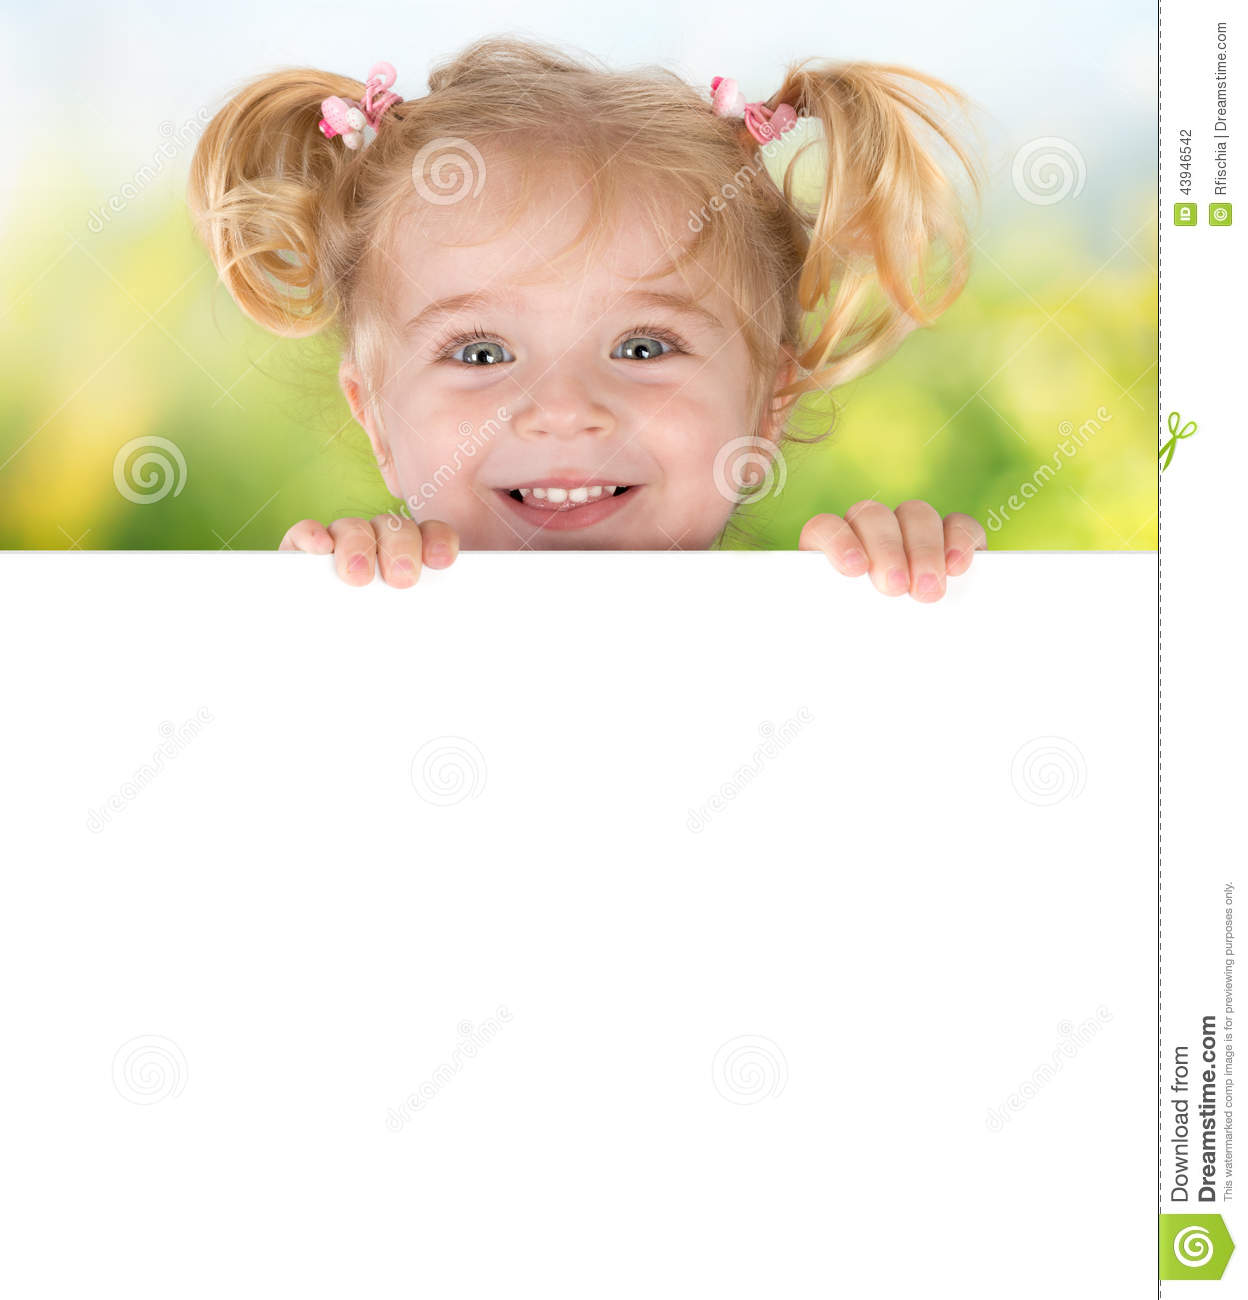 Smiling little girl peeking behind a board